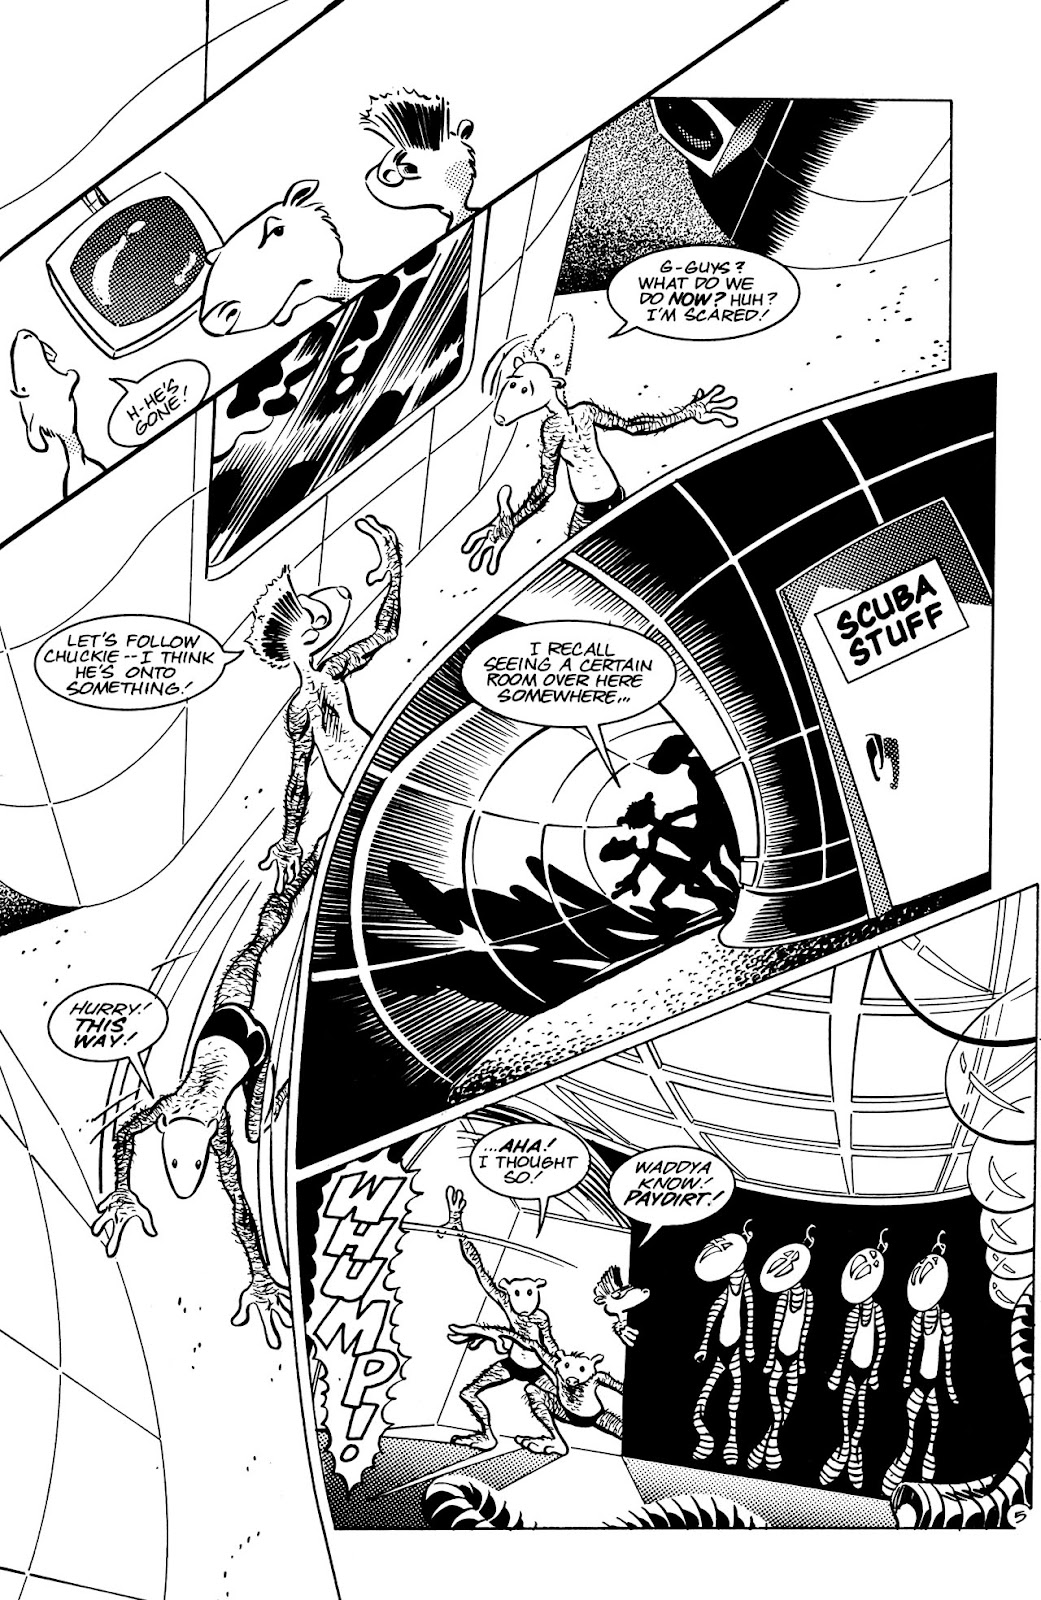 Adolescent Radioactive Black Belt Hamsters (1986) issue 8 - Page 6